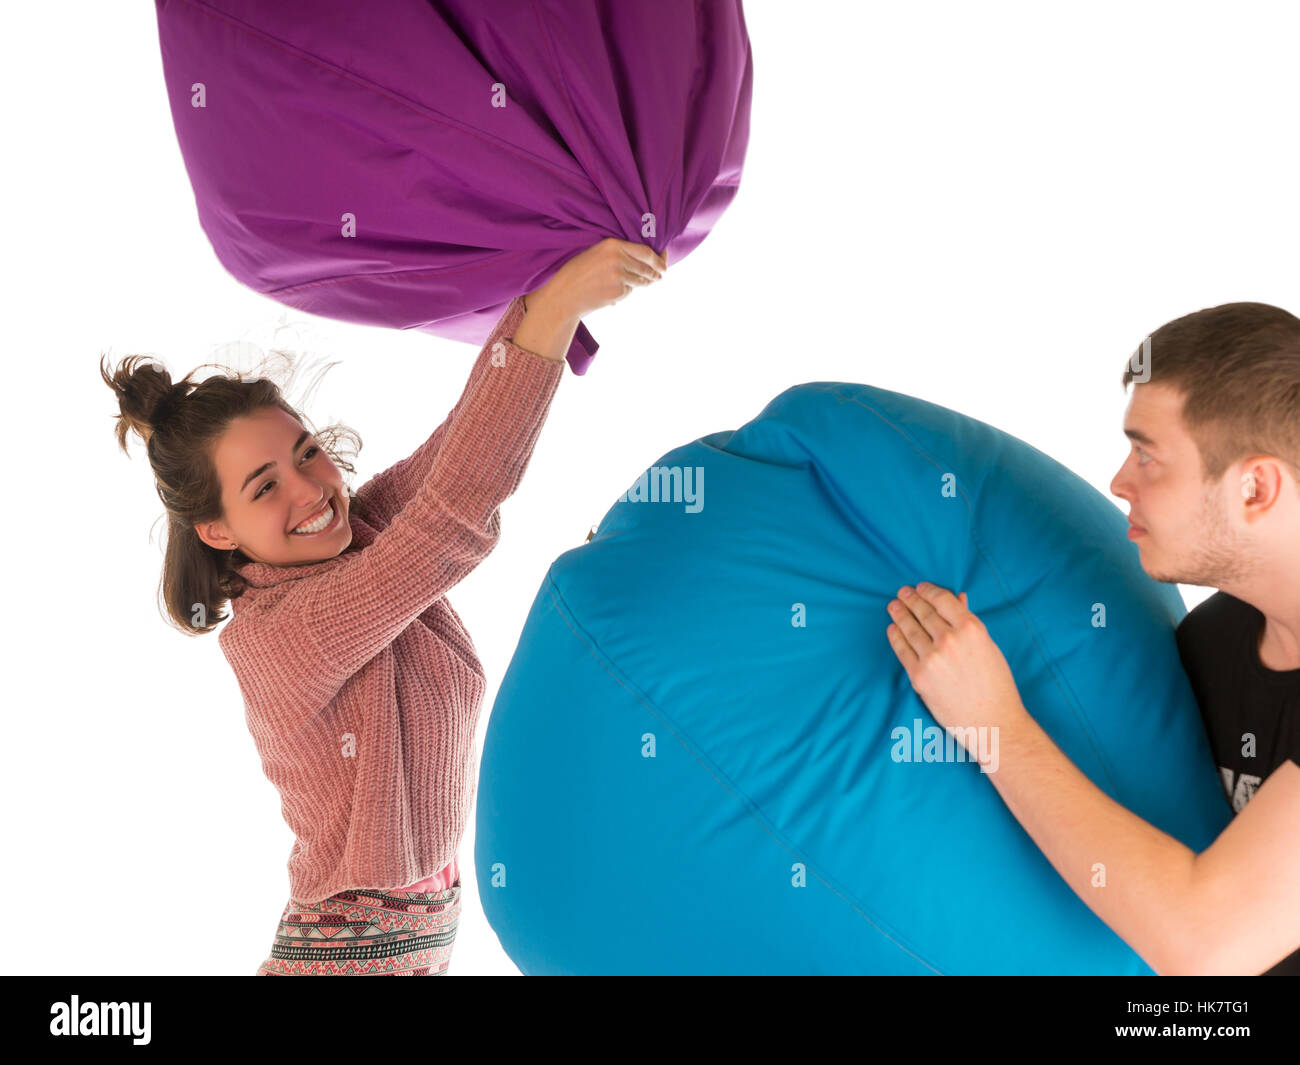 Young funny couple fighting with beanbag chairs isolated on white background - Stock Image